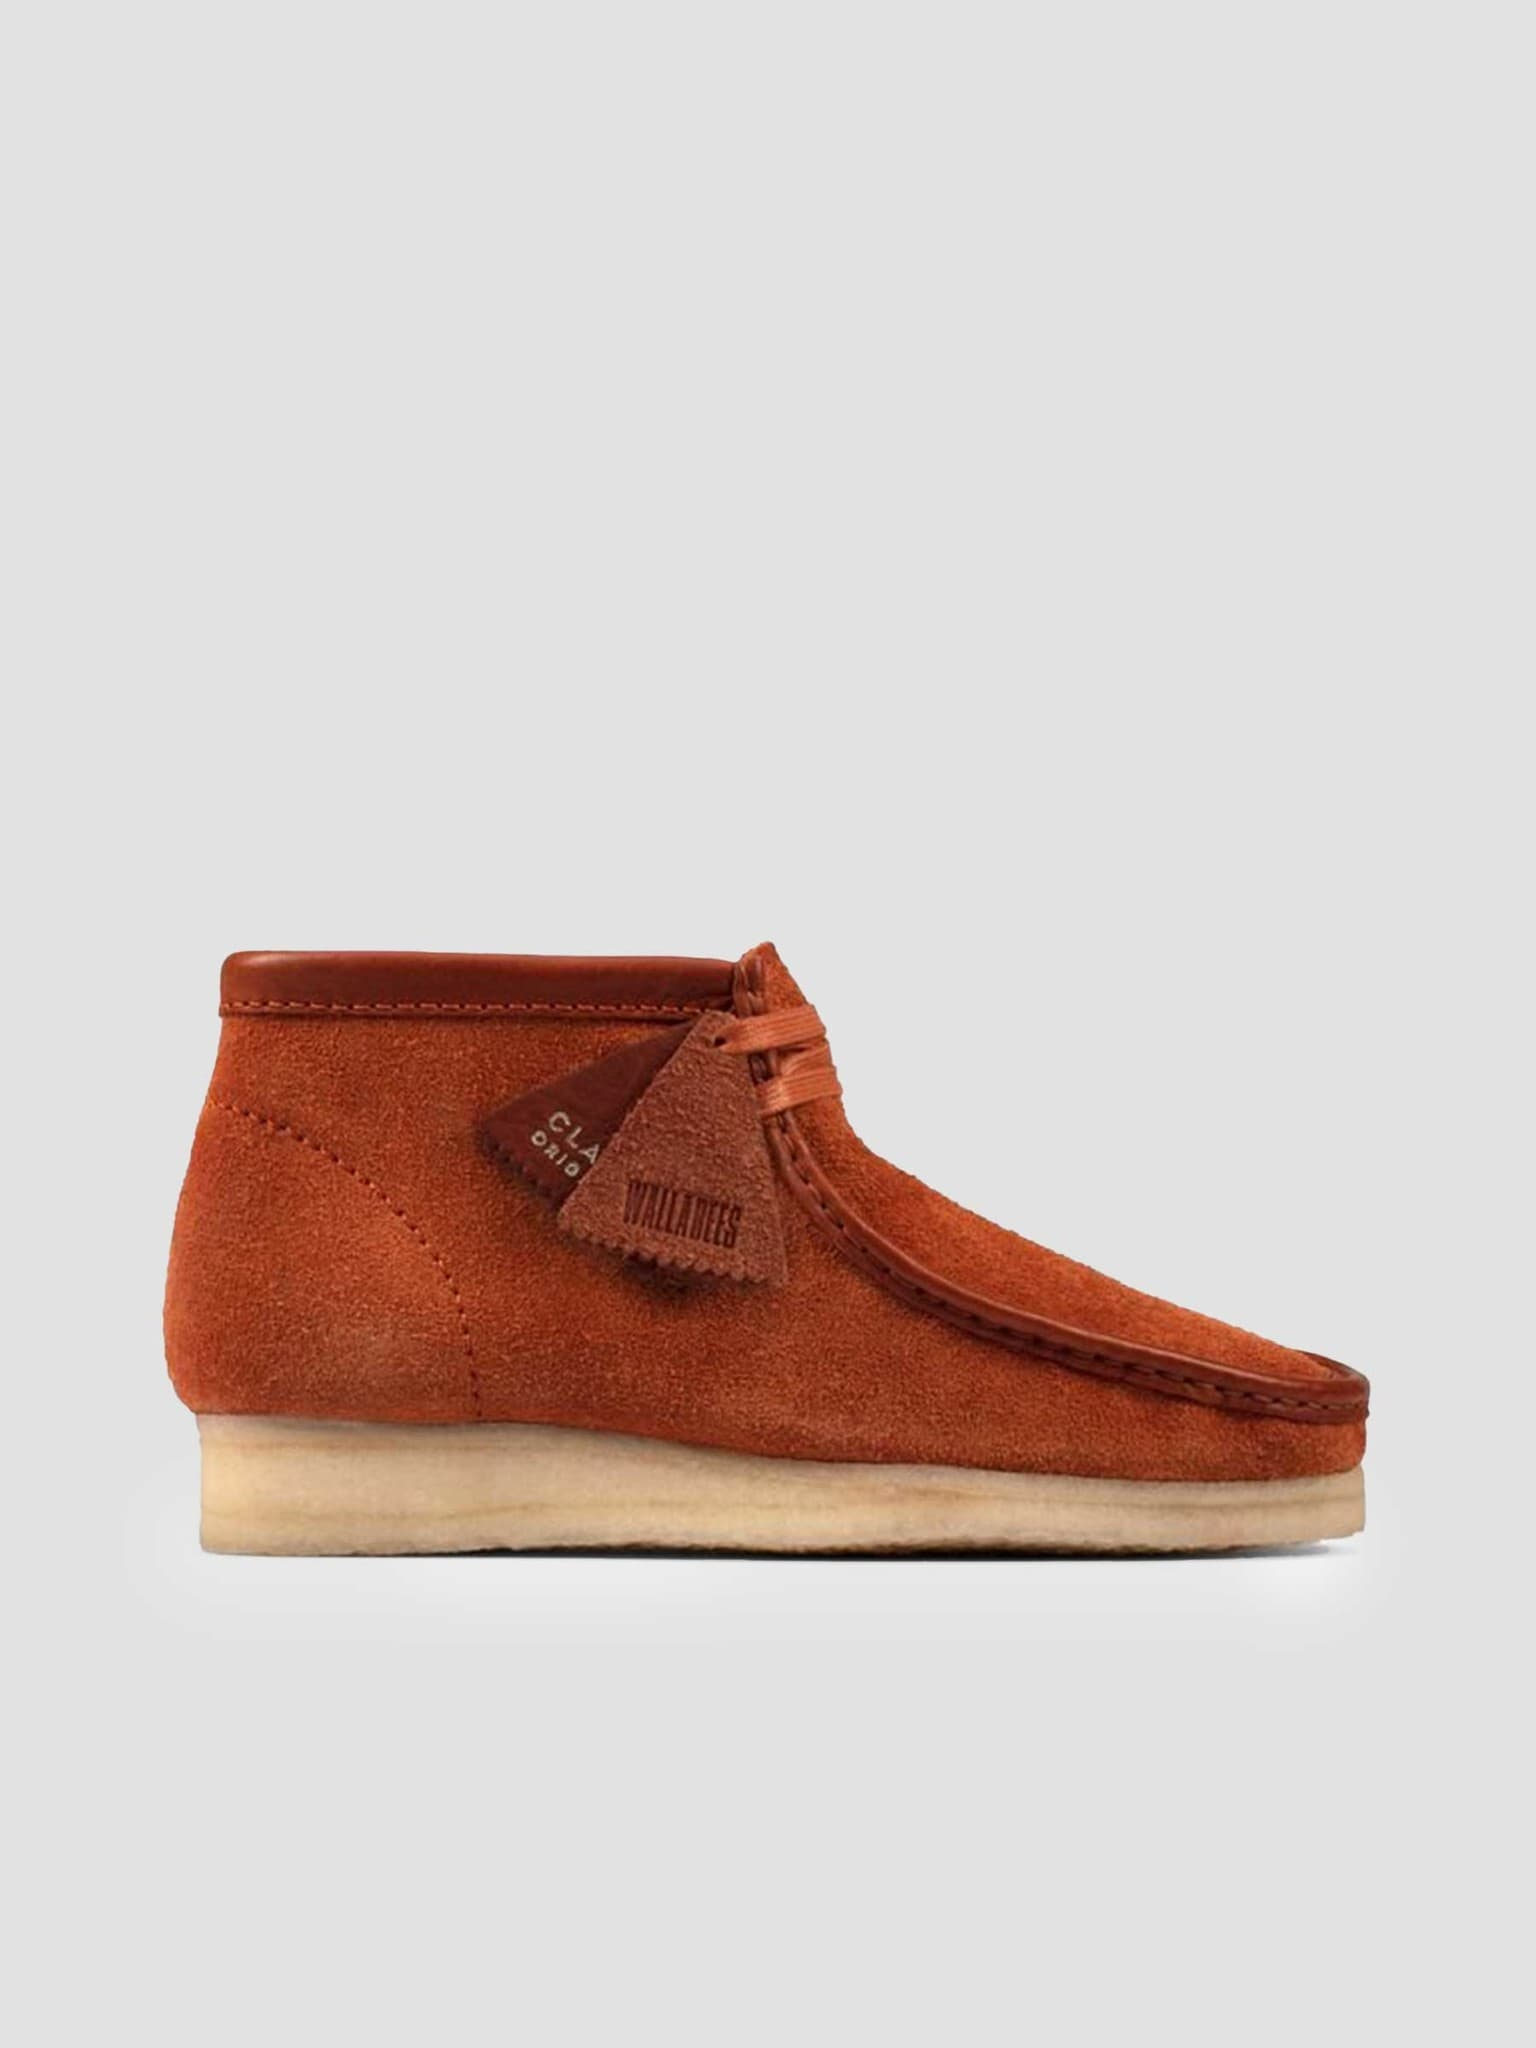 Wallabee Boot Tan Hairy Suede